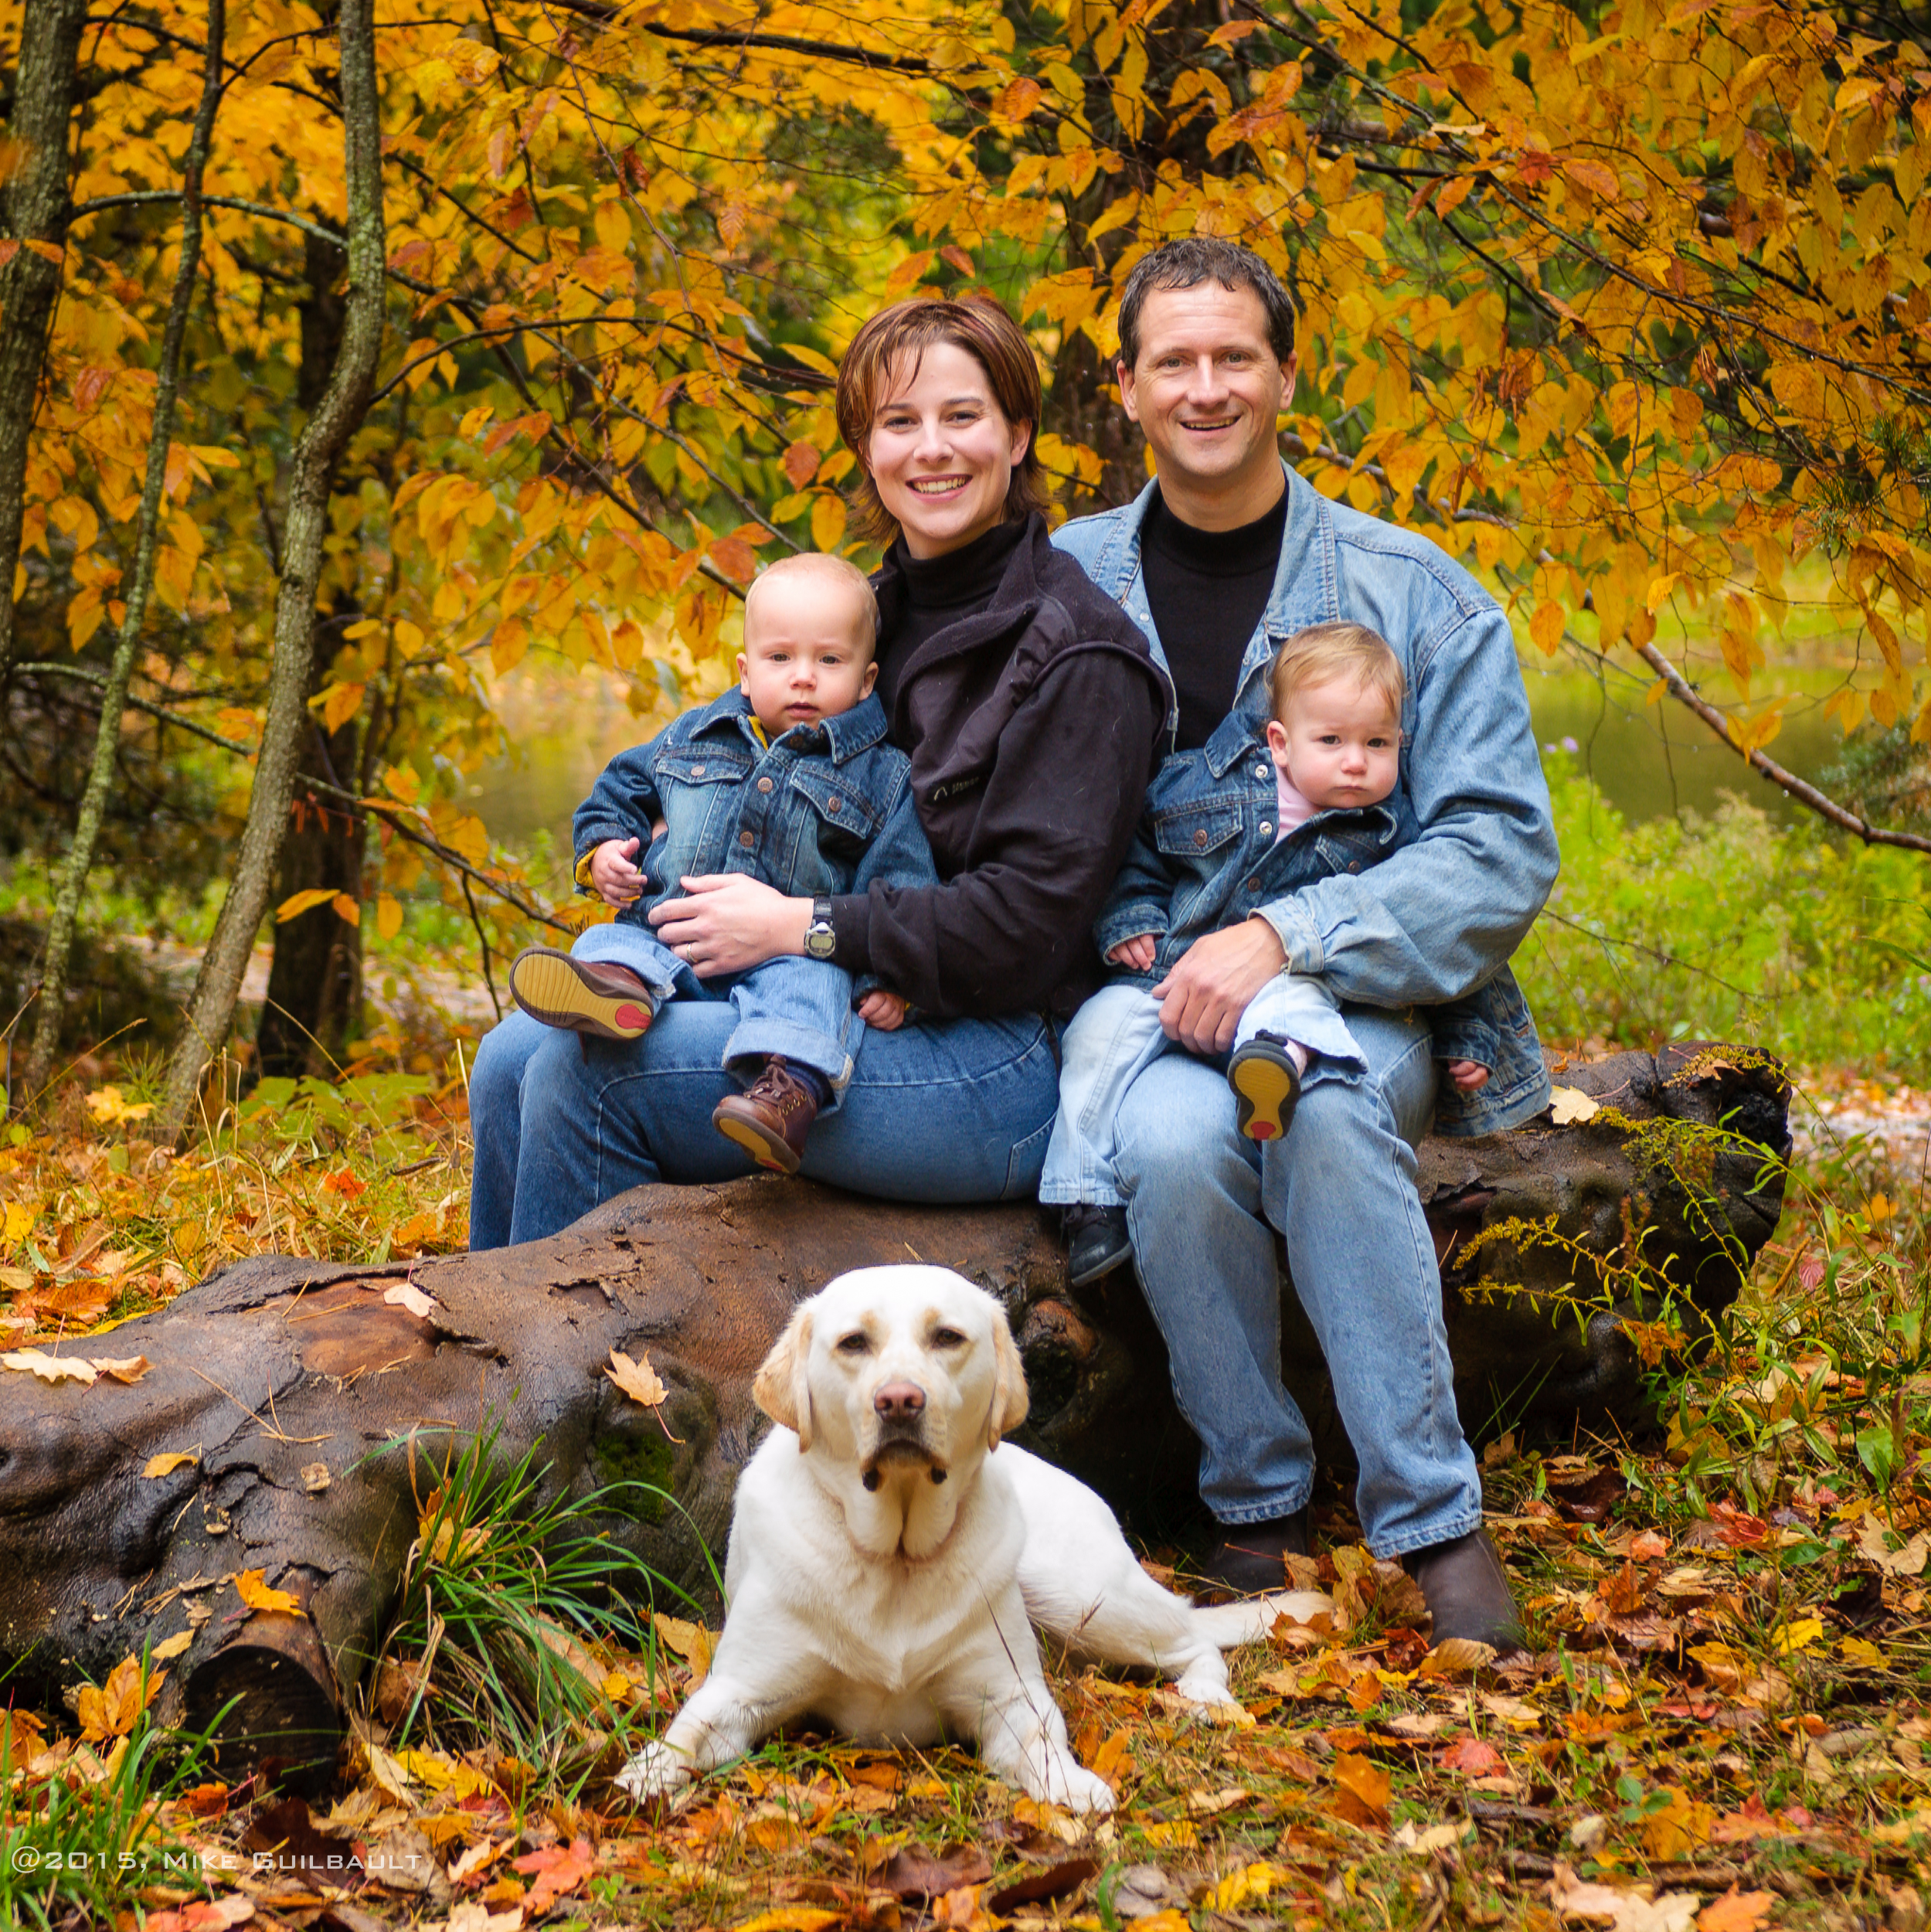 Blue Jeans make for a classic yet contemporary look to a family portrait. And of course the family dog should be in the portrait as well. After all, they are family too.